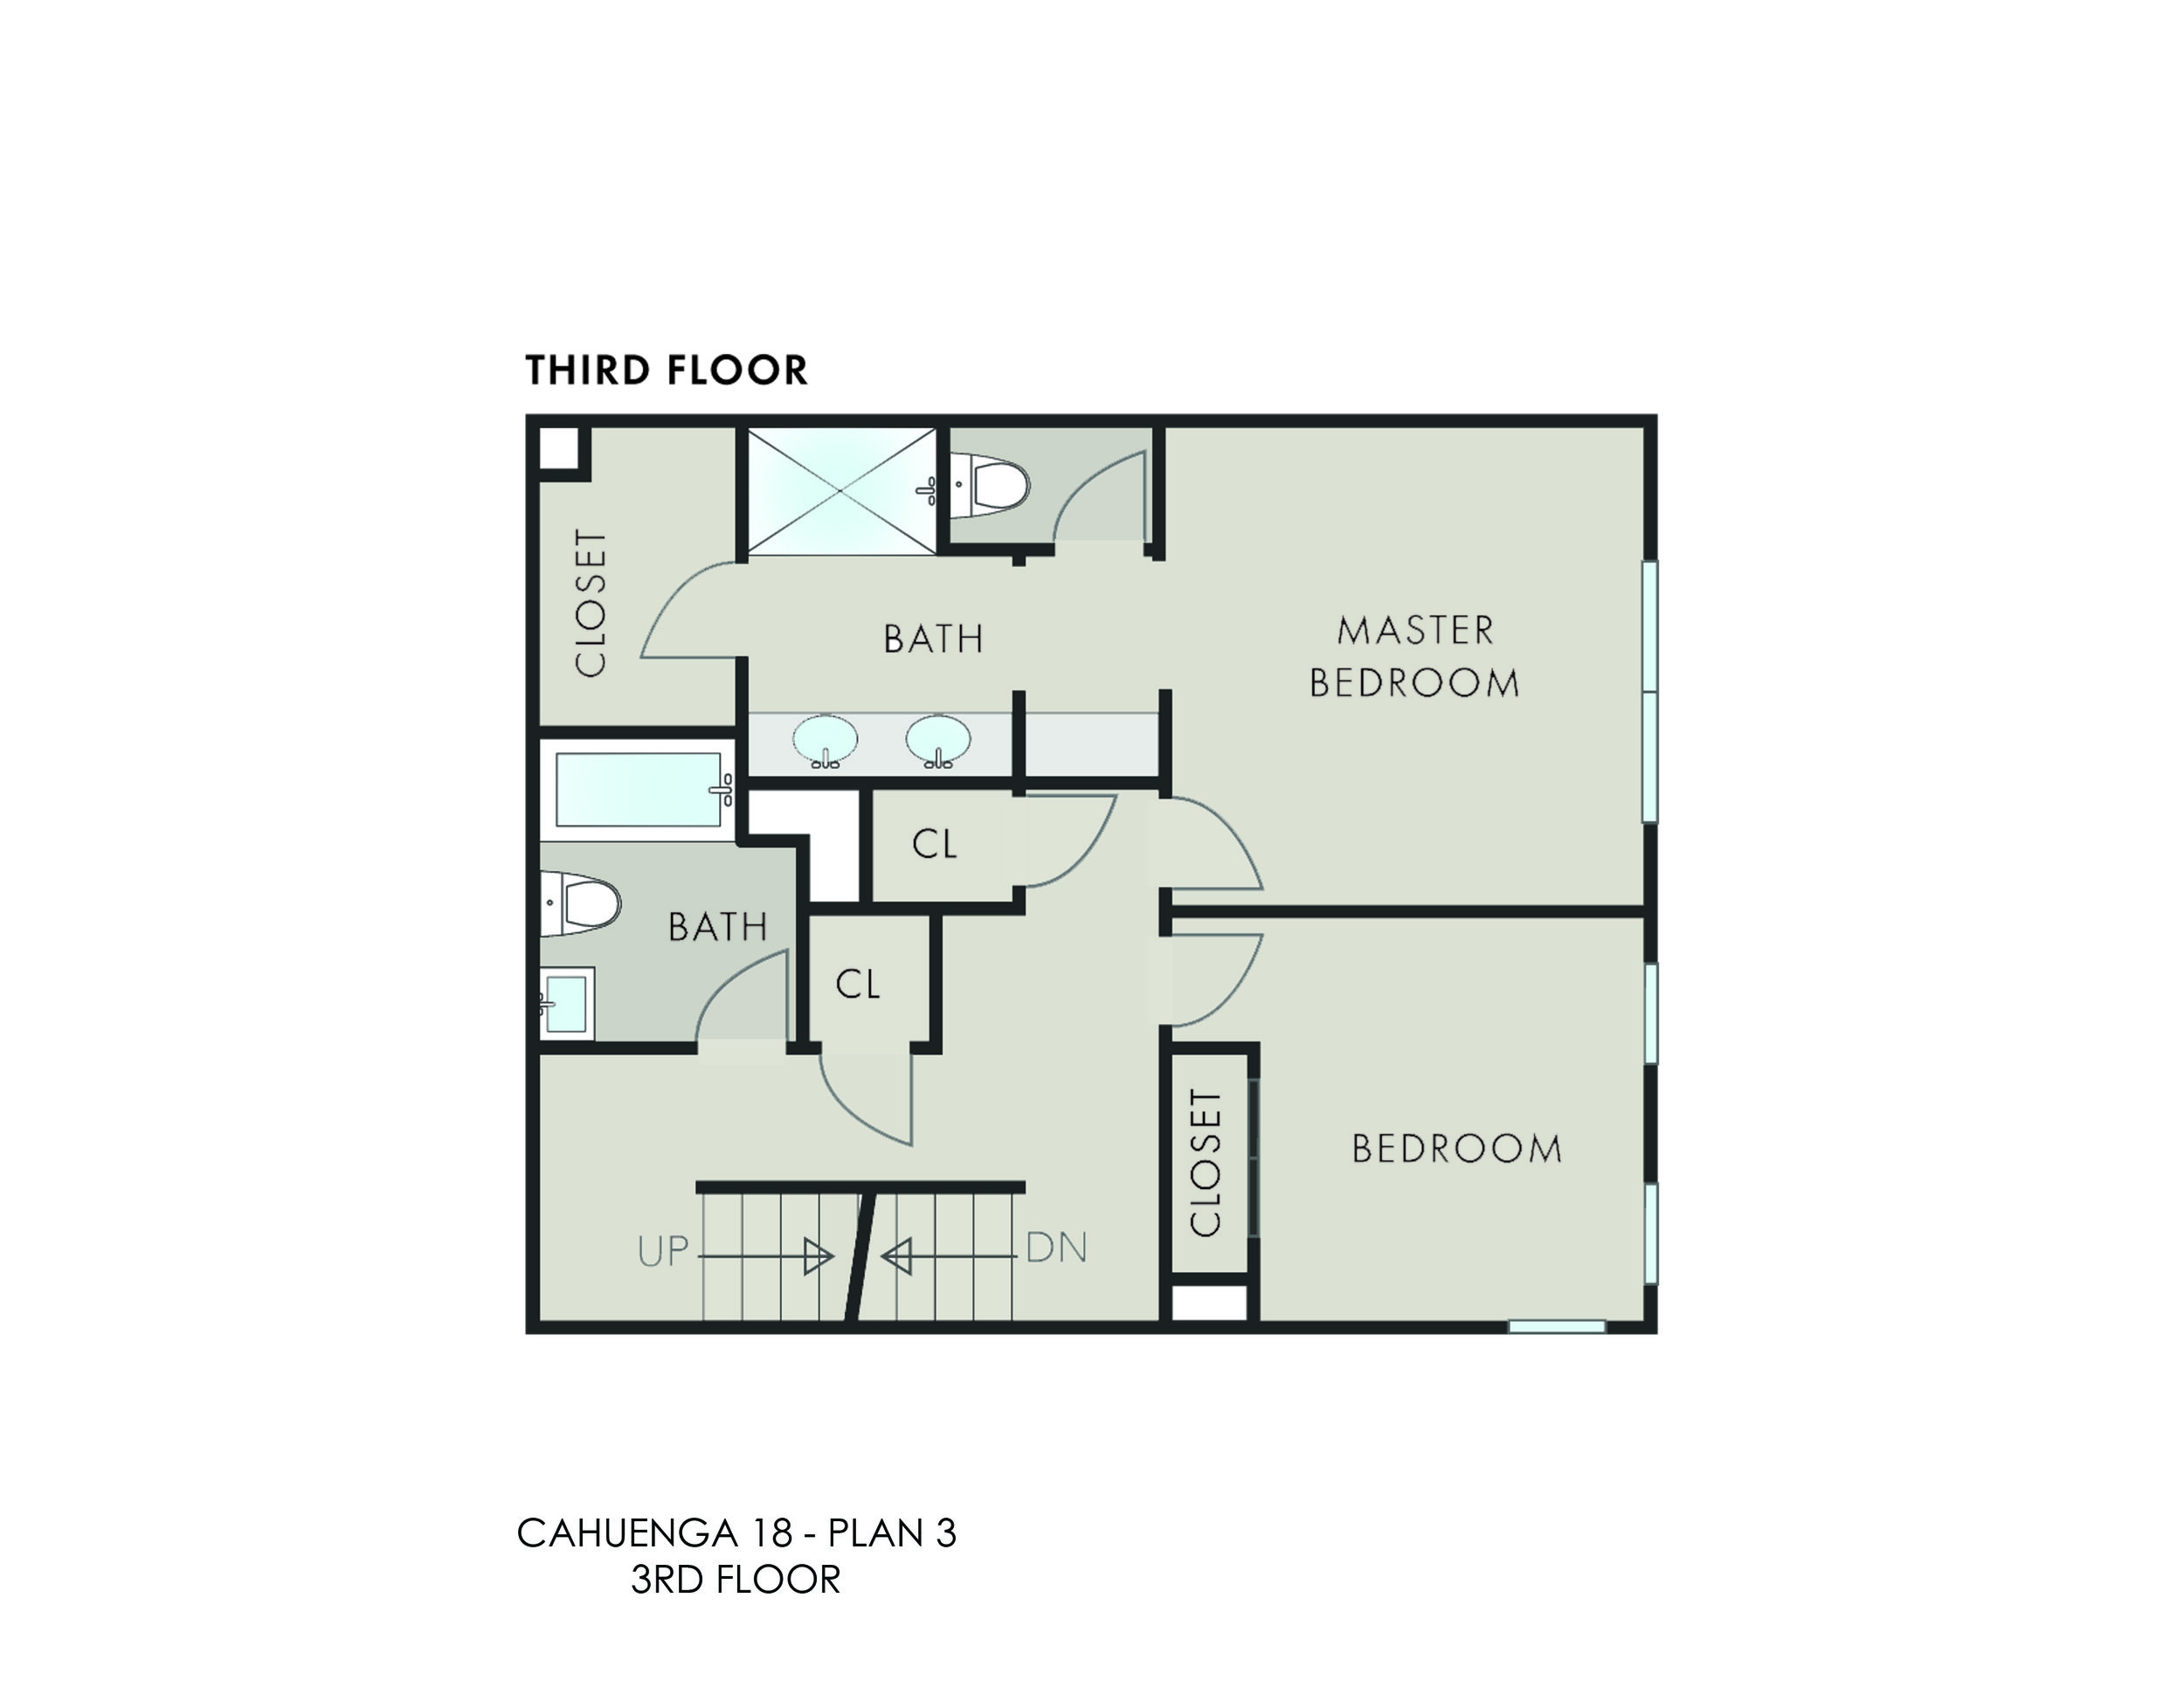 cahuenga3_FP_RENDERED_3RD FL.jpg